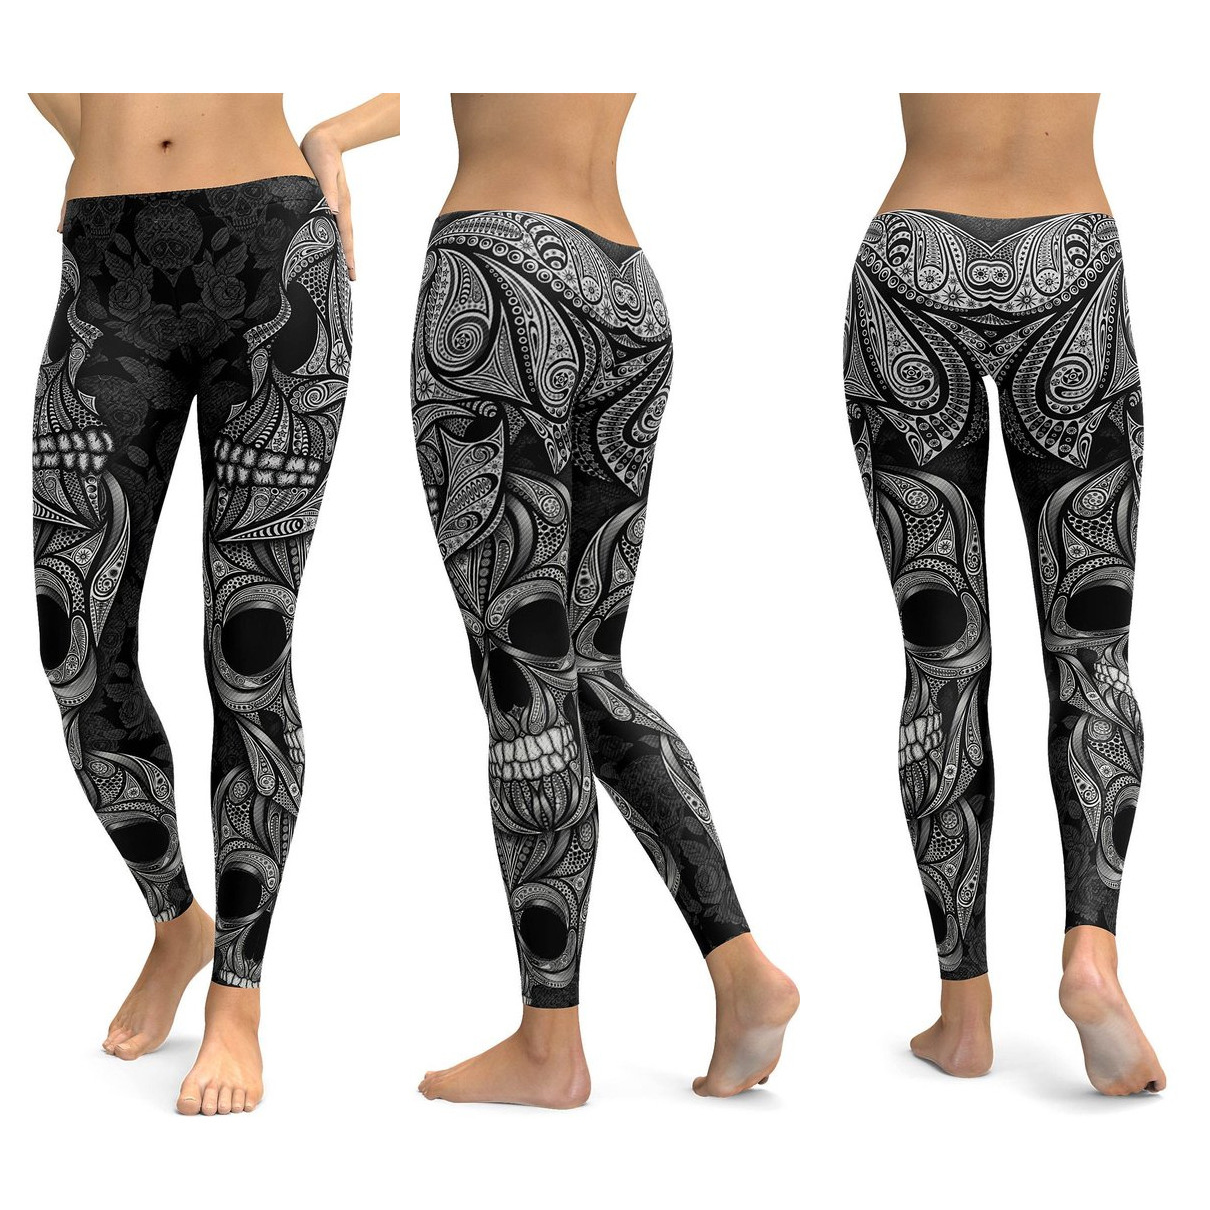 Skull Leggings Yoga Pants Women Sports Pants Fitness Running Sexy Push Up Gym Wear Elastic Slim Workout Leggings 26